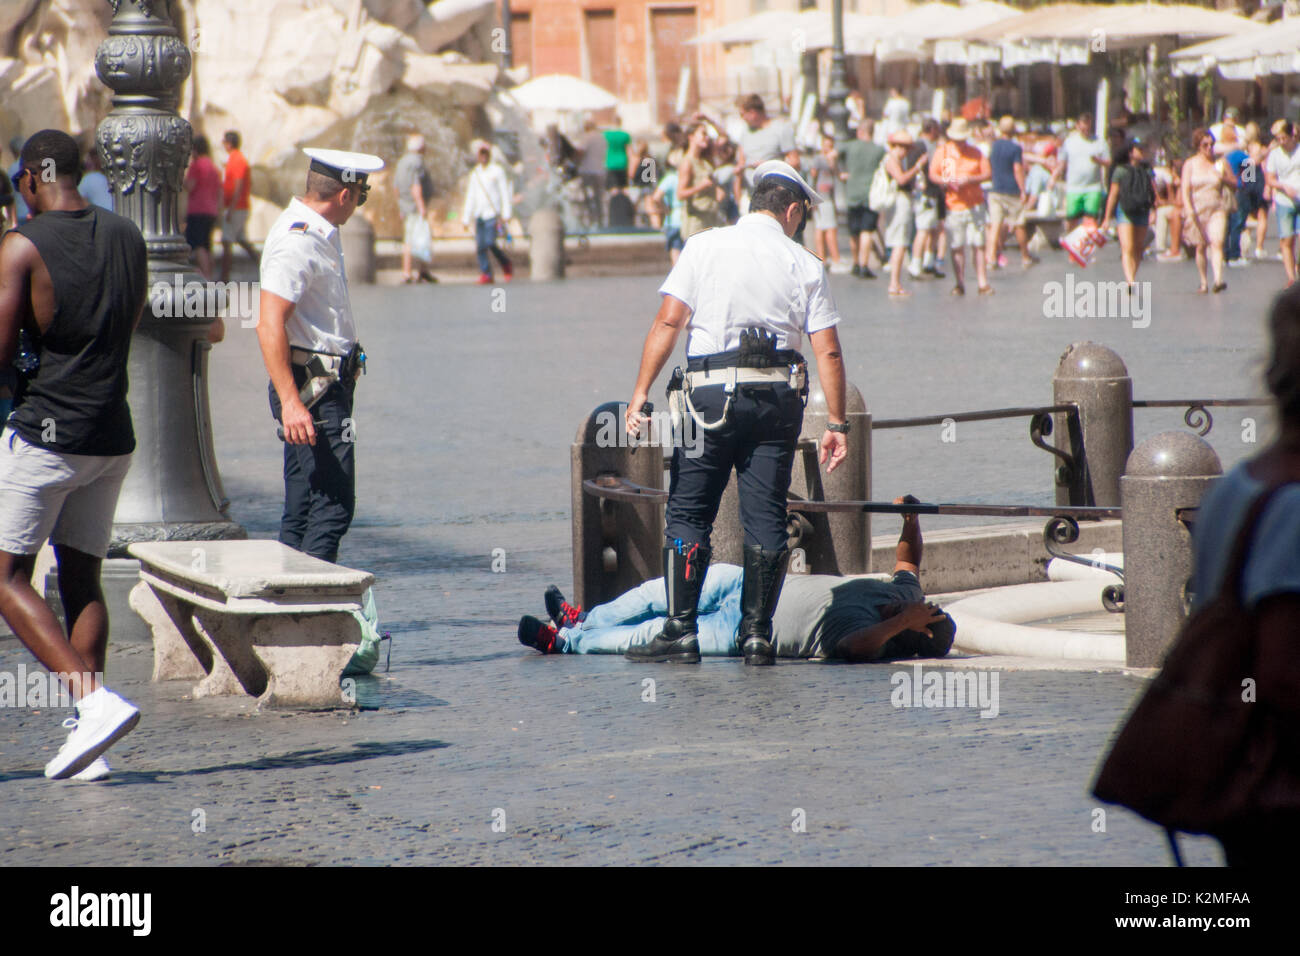 The government in Rome has asked regional authorities to provide new beds for migrants who are arriving on a daily basis in Italy - Stock Image